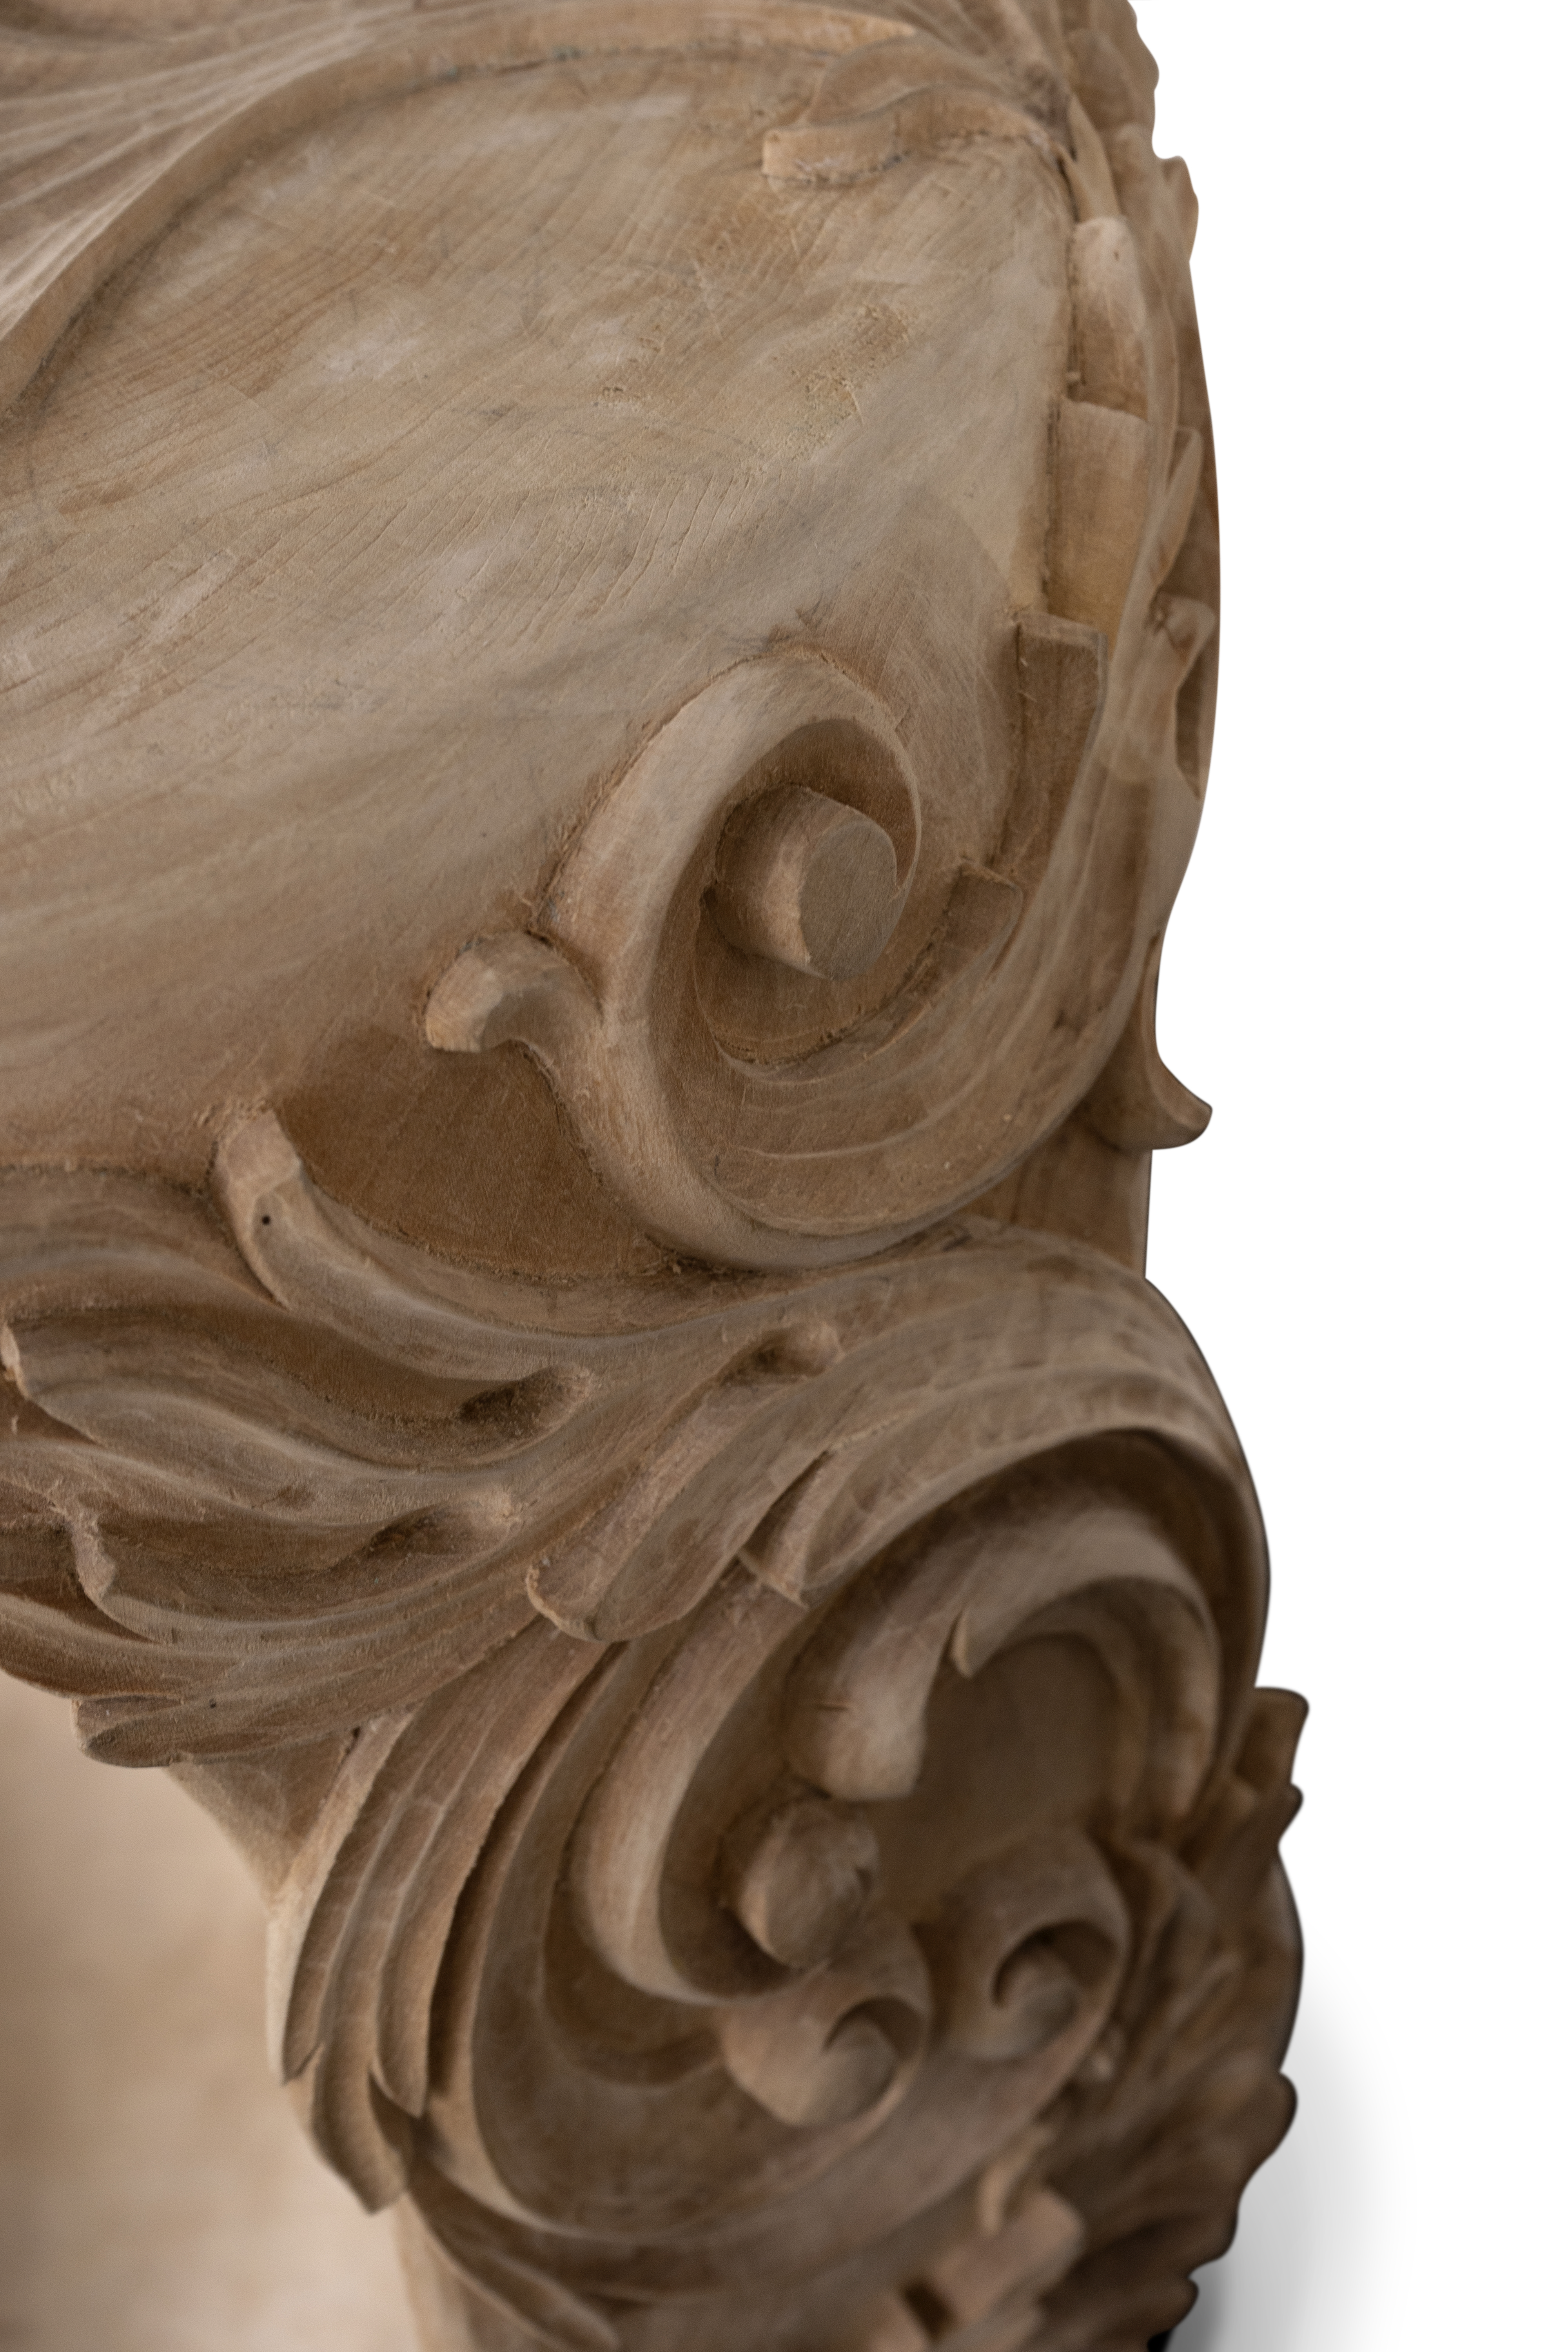 Craftsmanship Masterpieces detail artstool collection ARTsTOOL Collection – Craftsmanship Masterpieces by Project CULTURE Wood Carving Technique stool detail